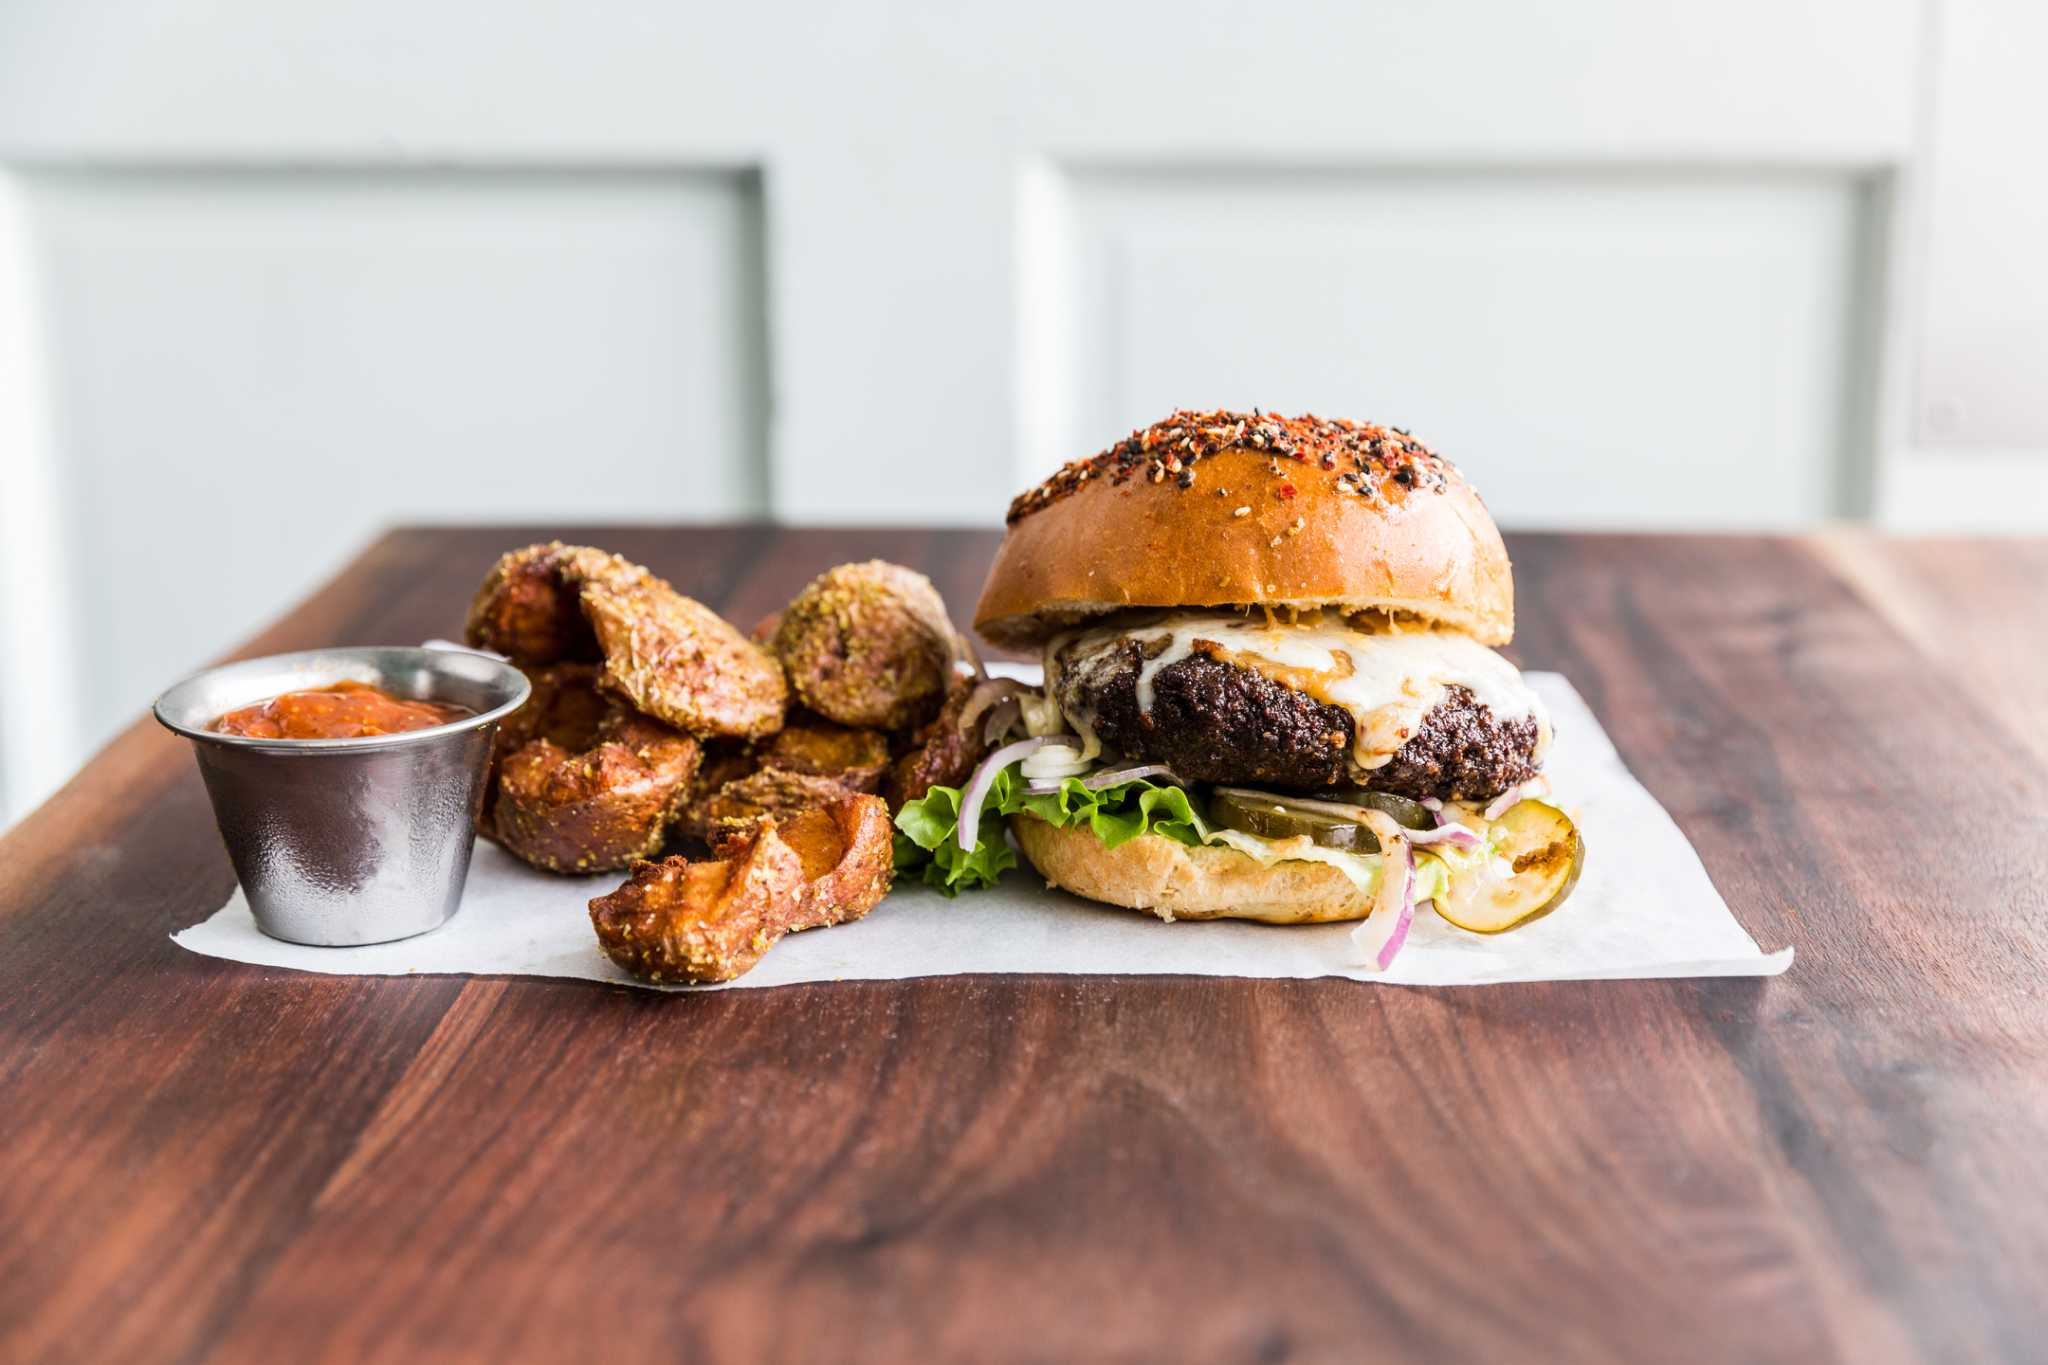 Where to eat and drink in Montrose and Midtown right now